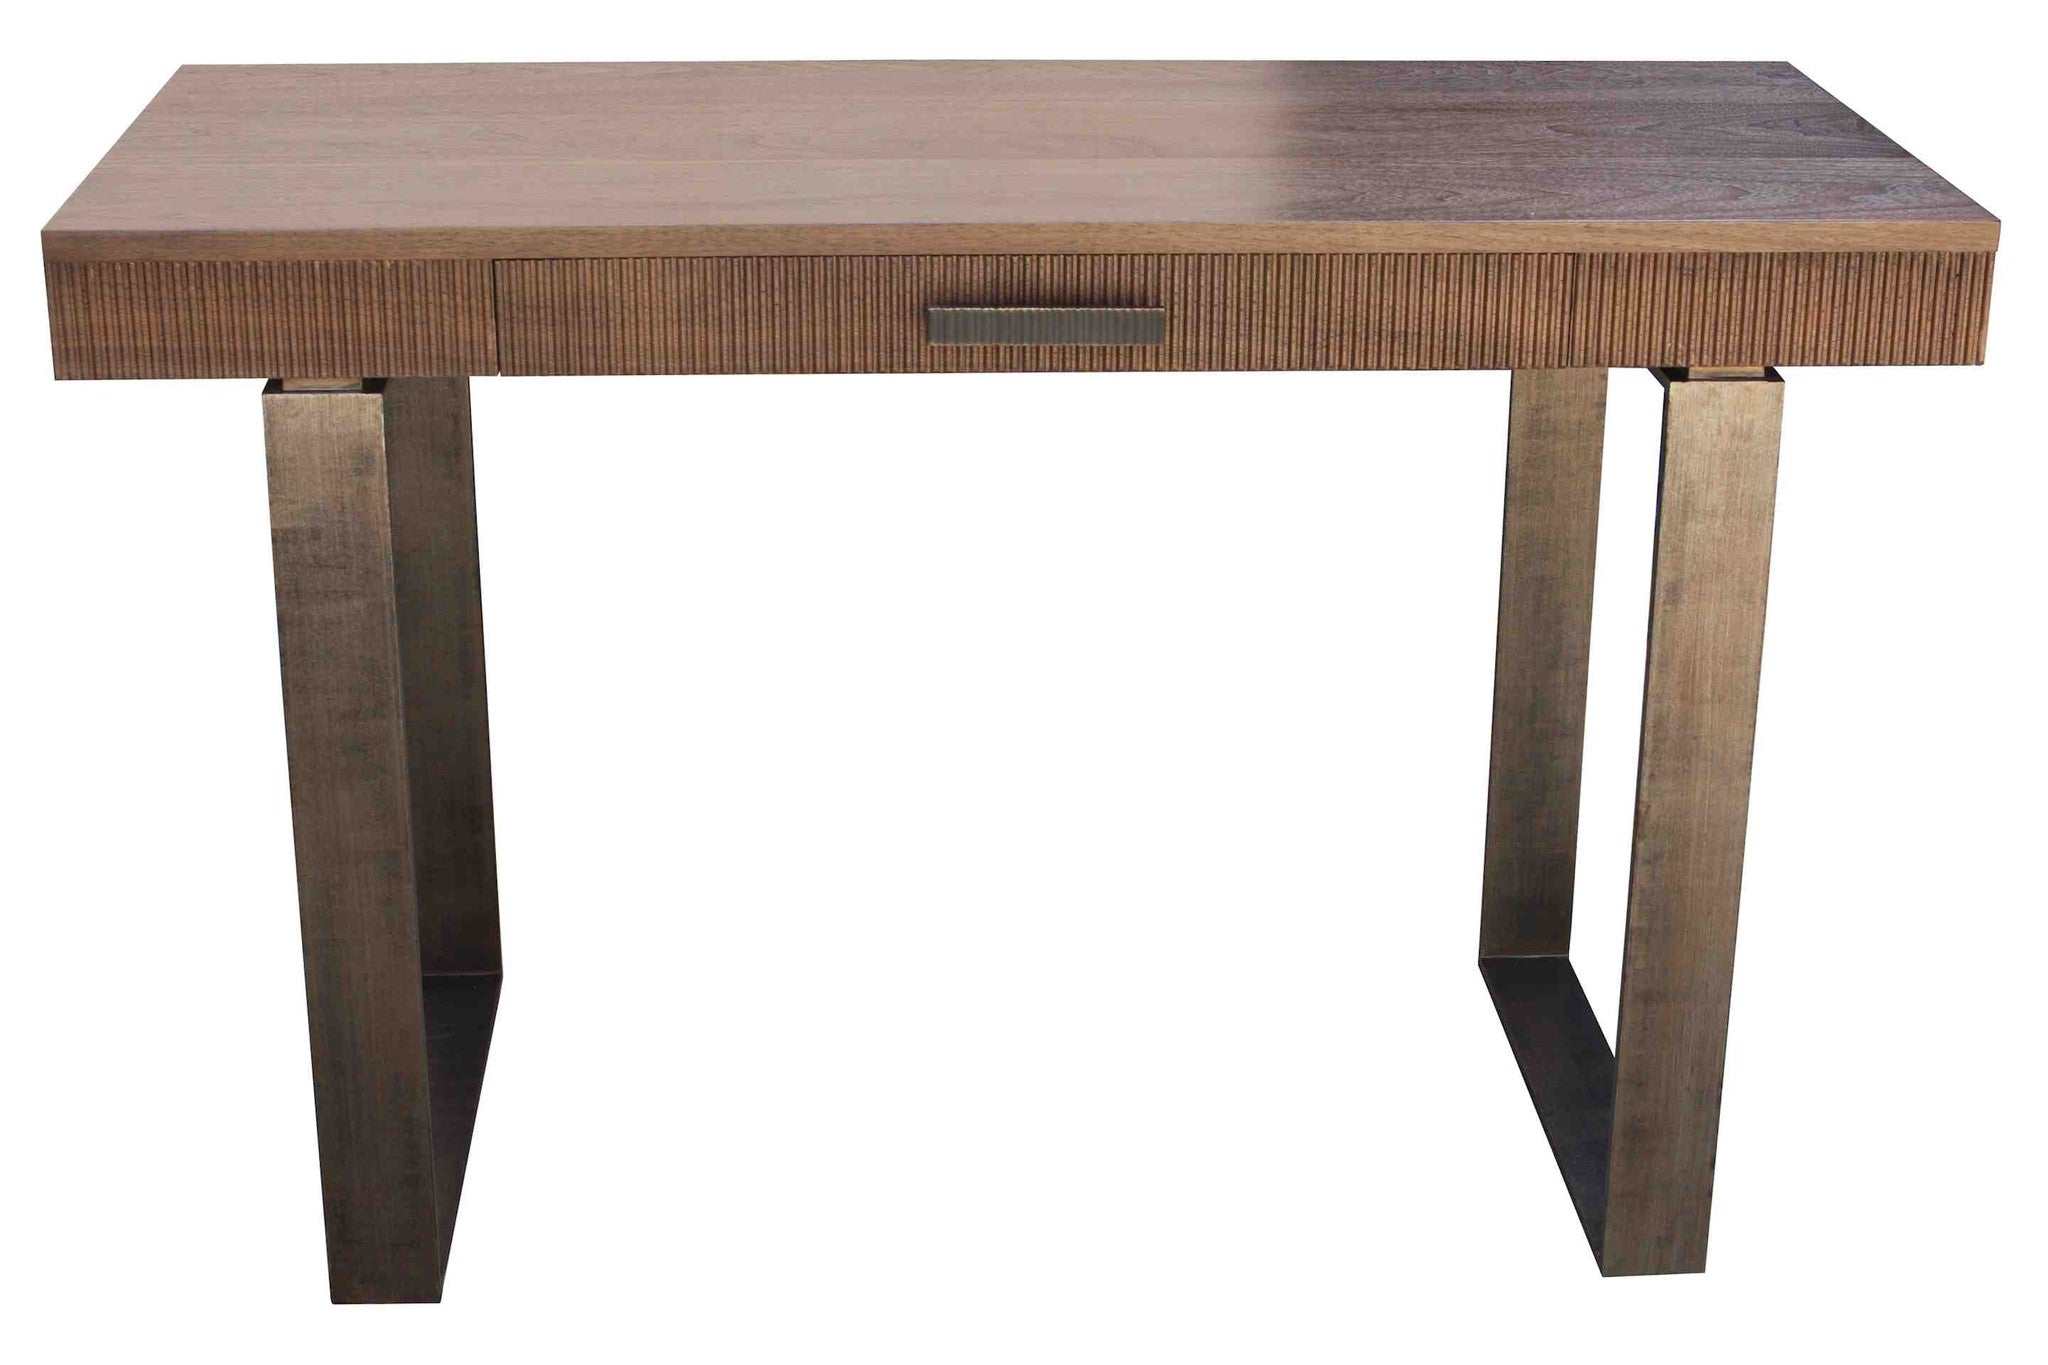 small modern desks with drawers - industrial modern desk mortise tenon